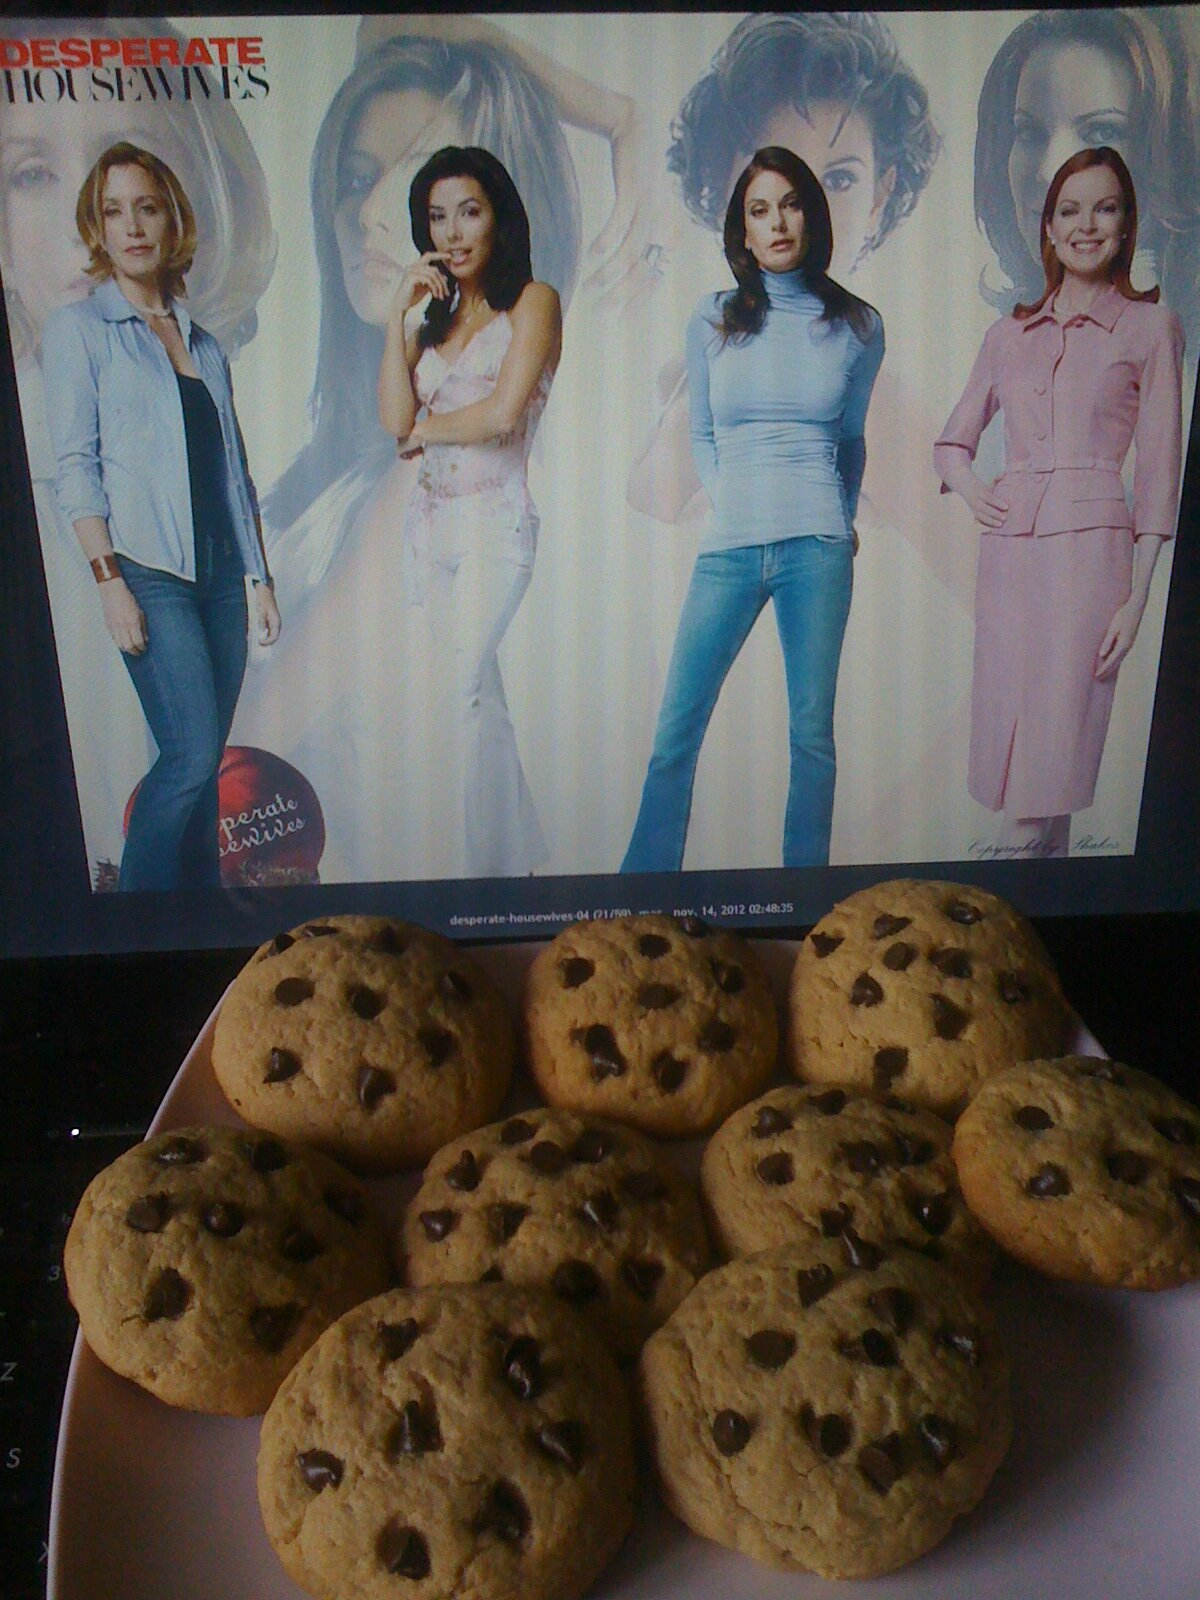 les cookies de desperate housewife!